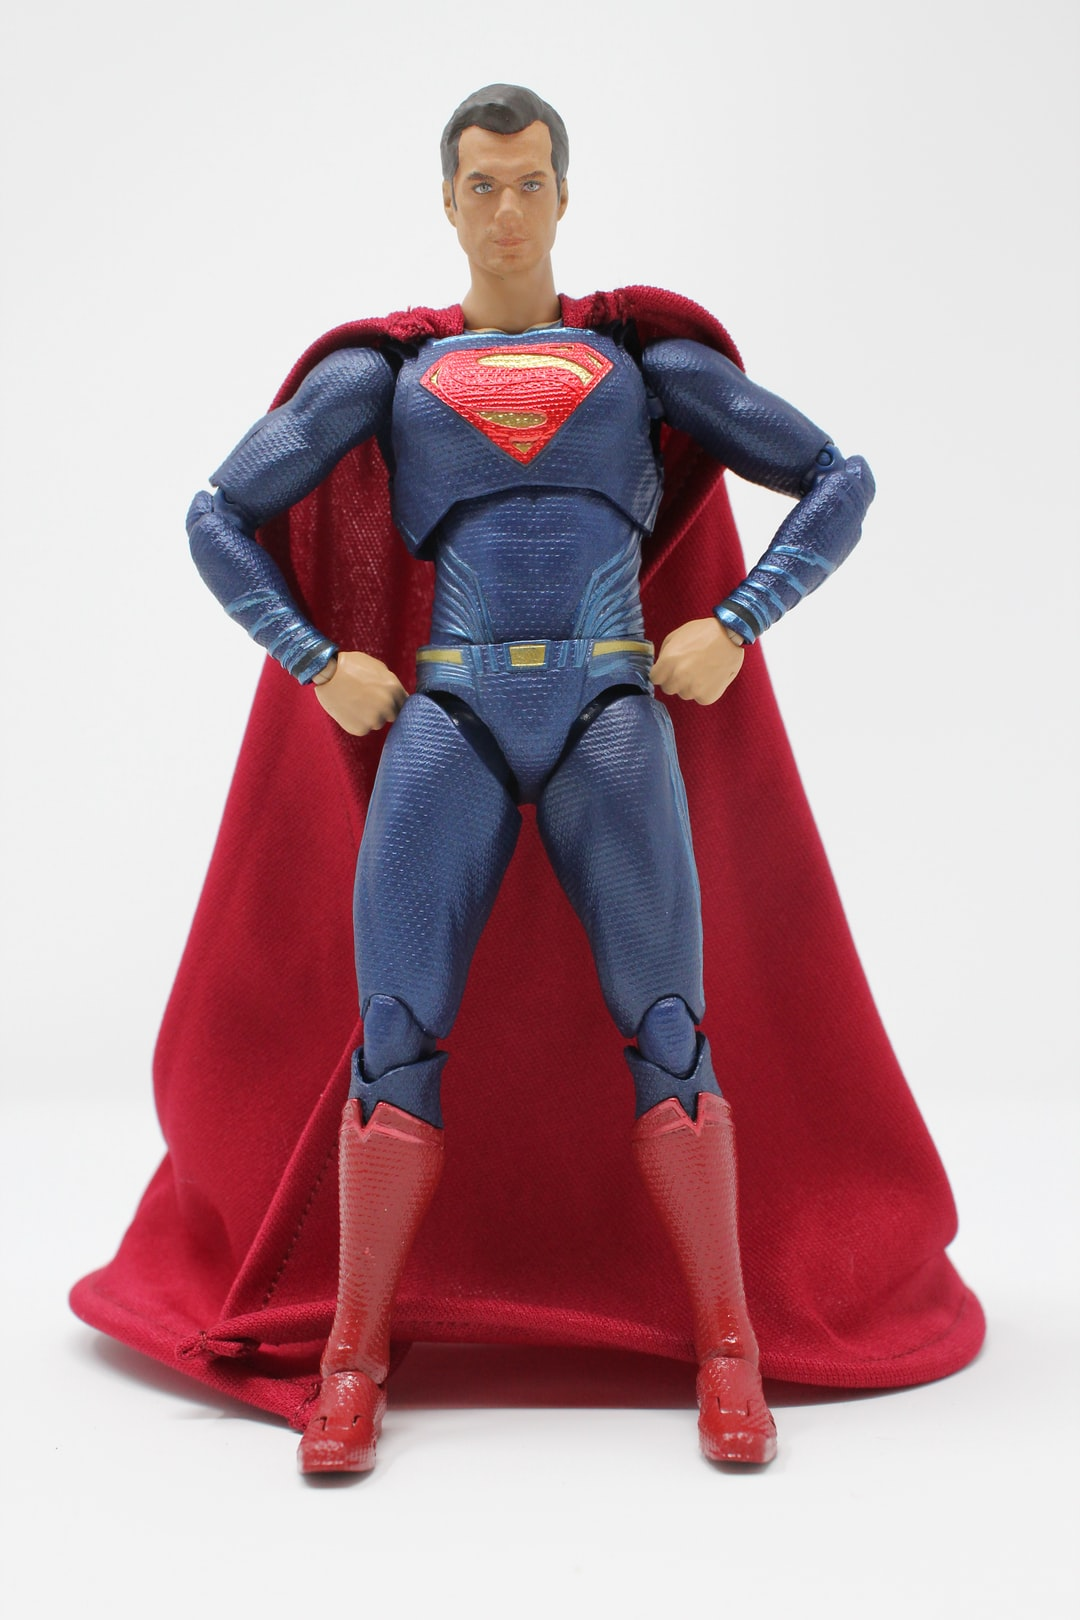 Superman.  Defending Truth, Justice, and the American Way!